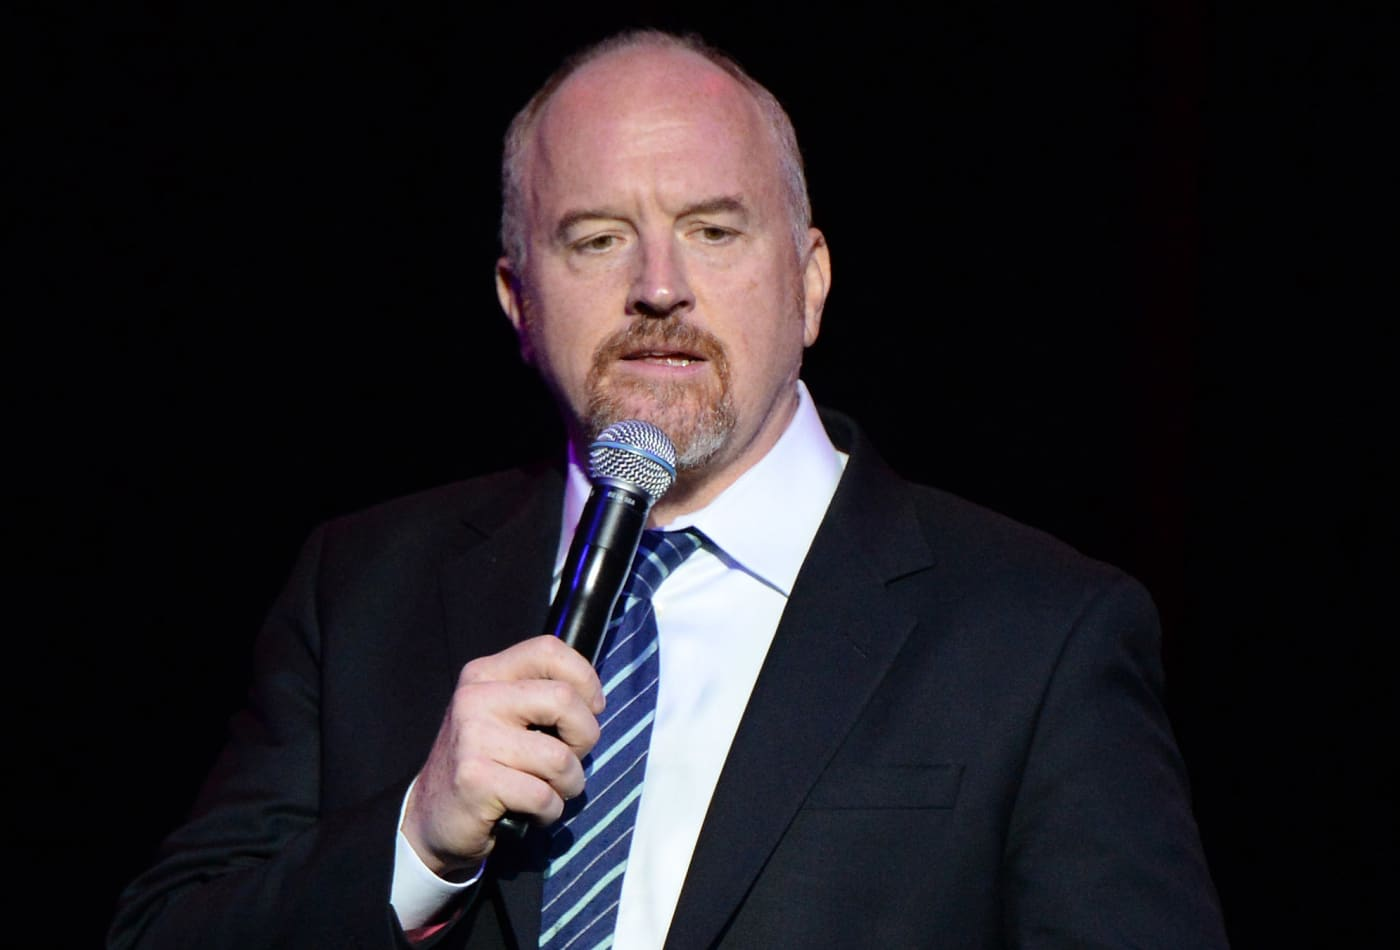 Disgraced comedian Louis CK is going on a world tour — so much for cancel culture